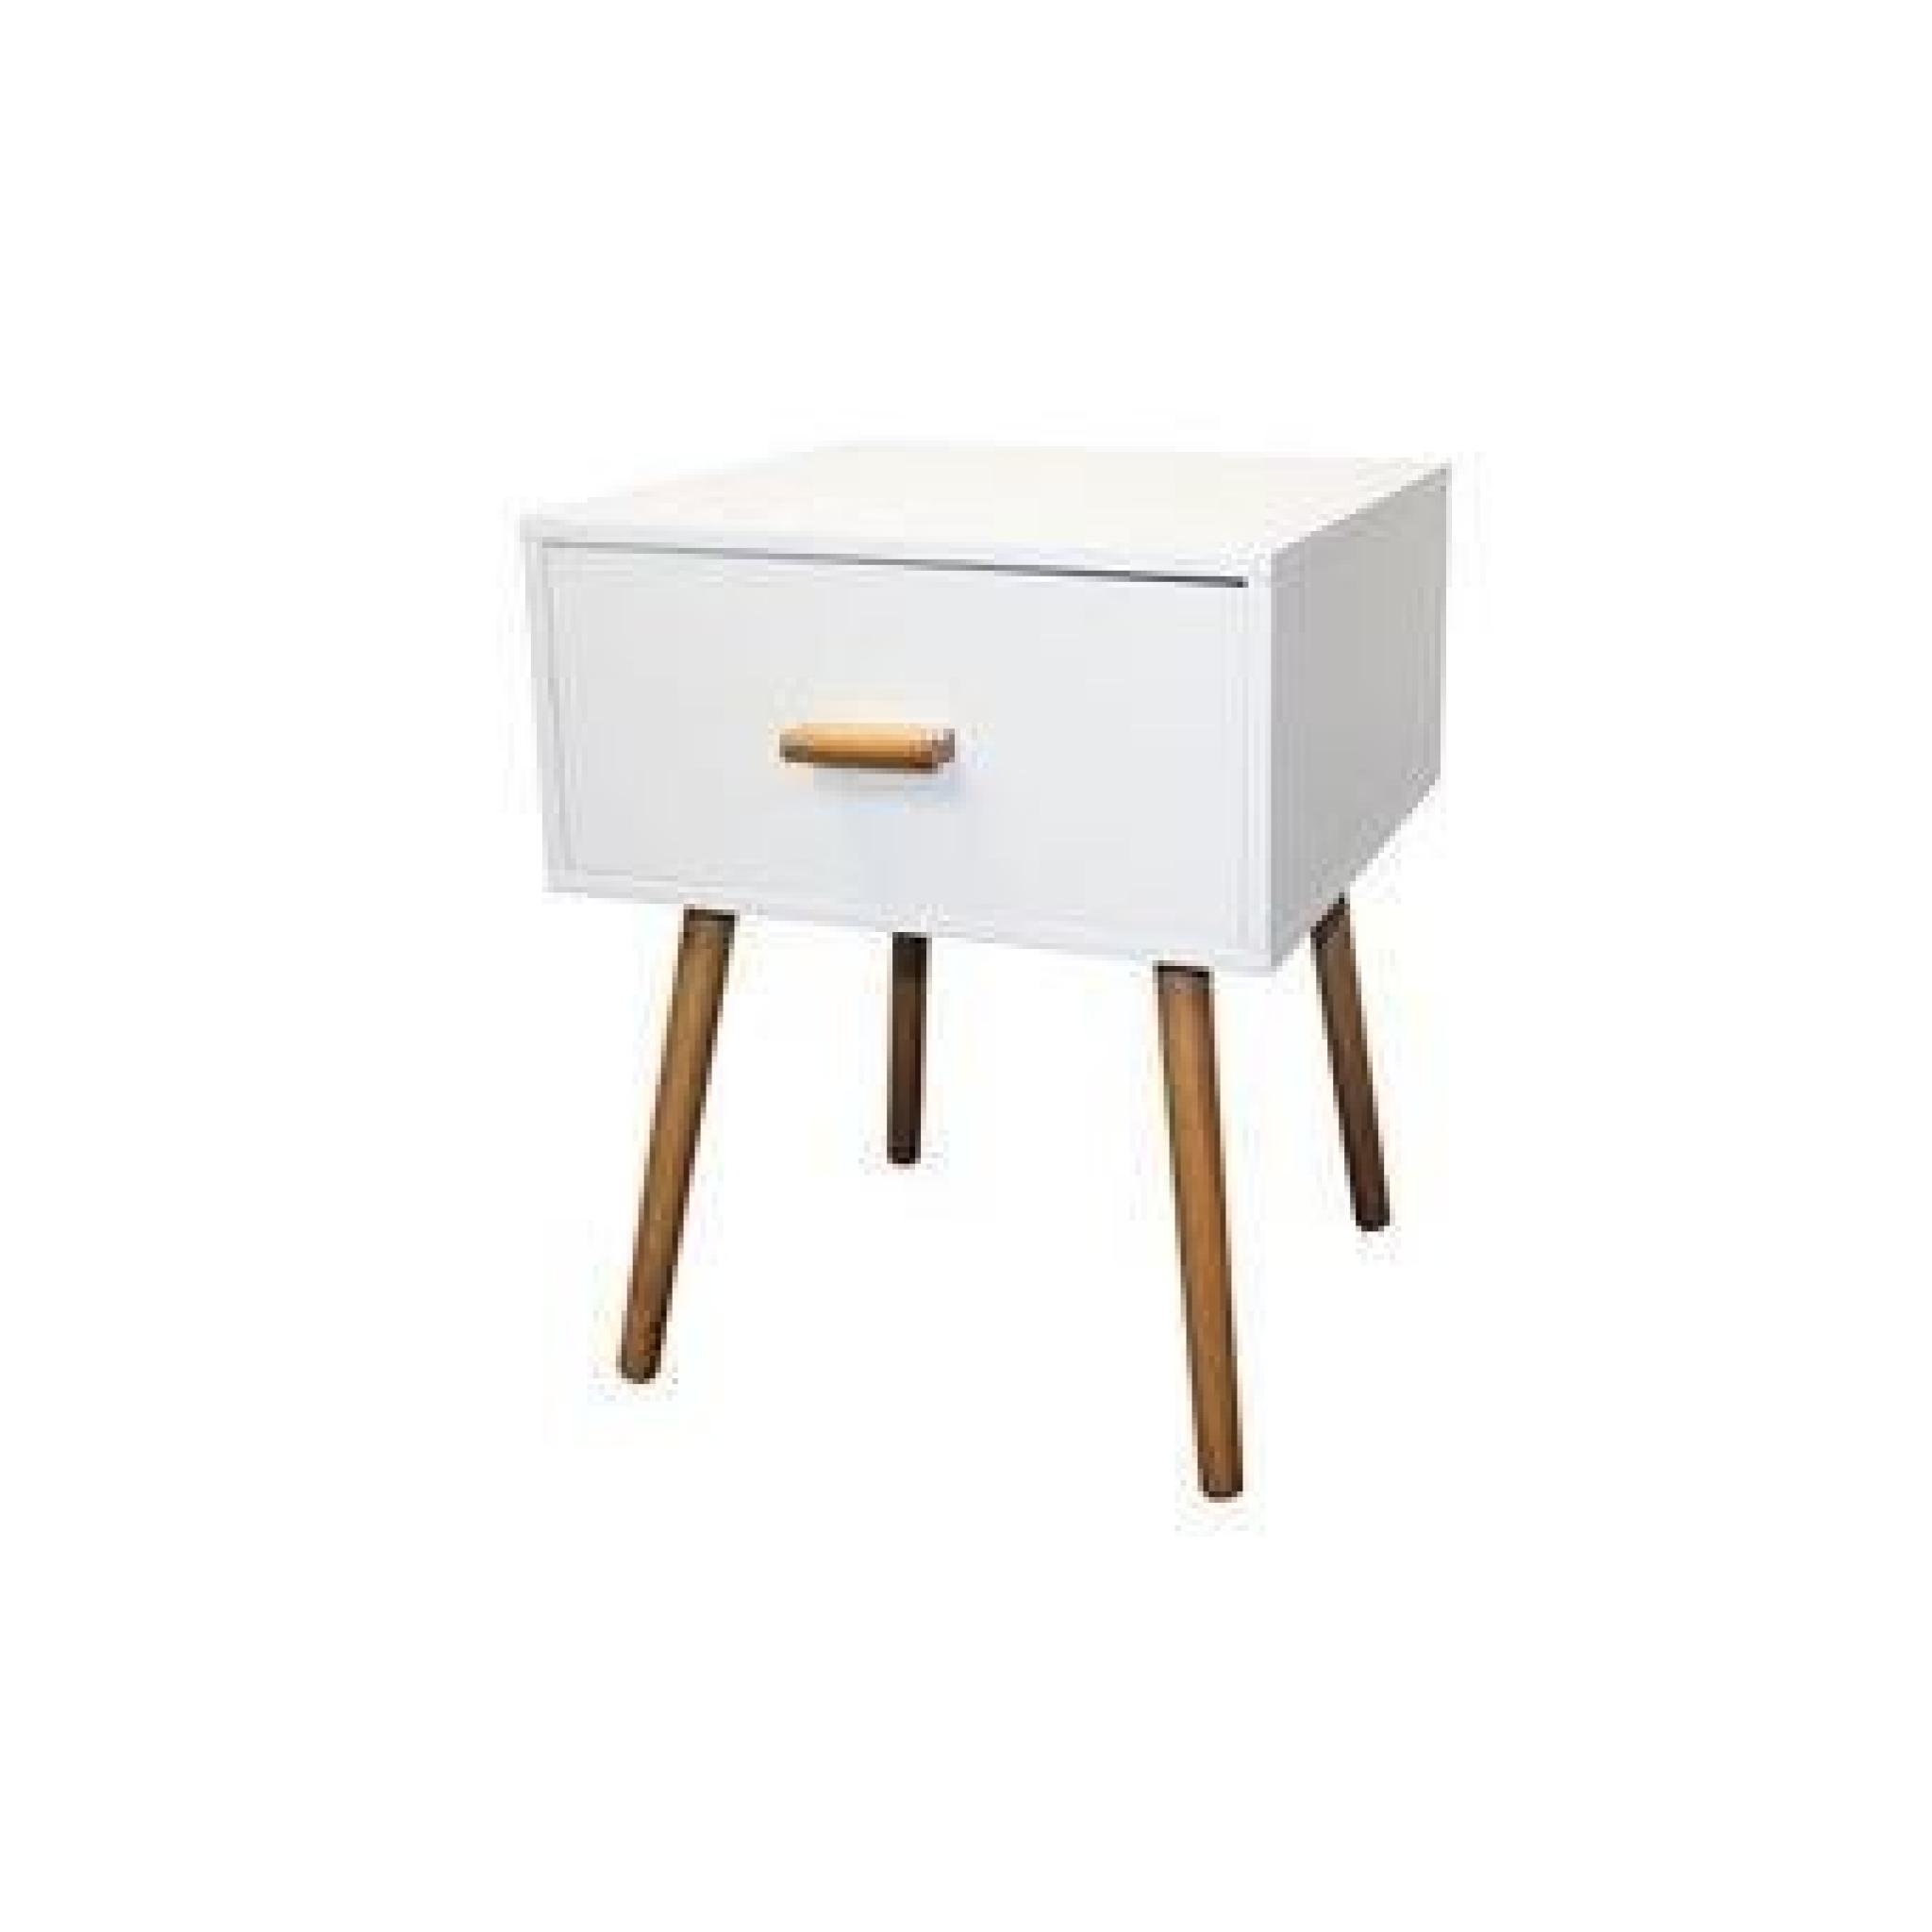 Table de chevet blanc design scandinave achat vente - Table de chevet miroir pas cher ...